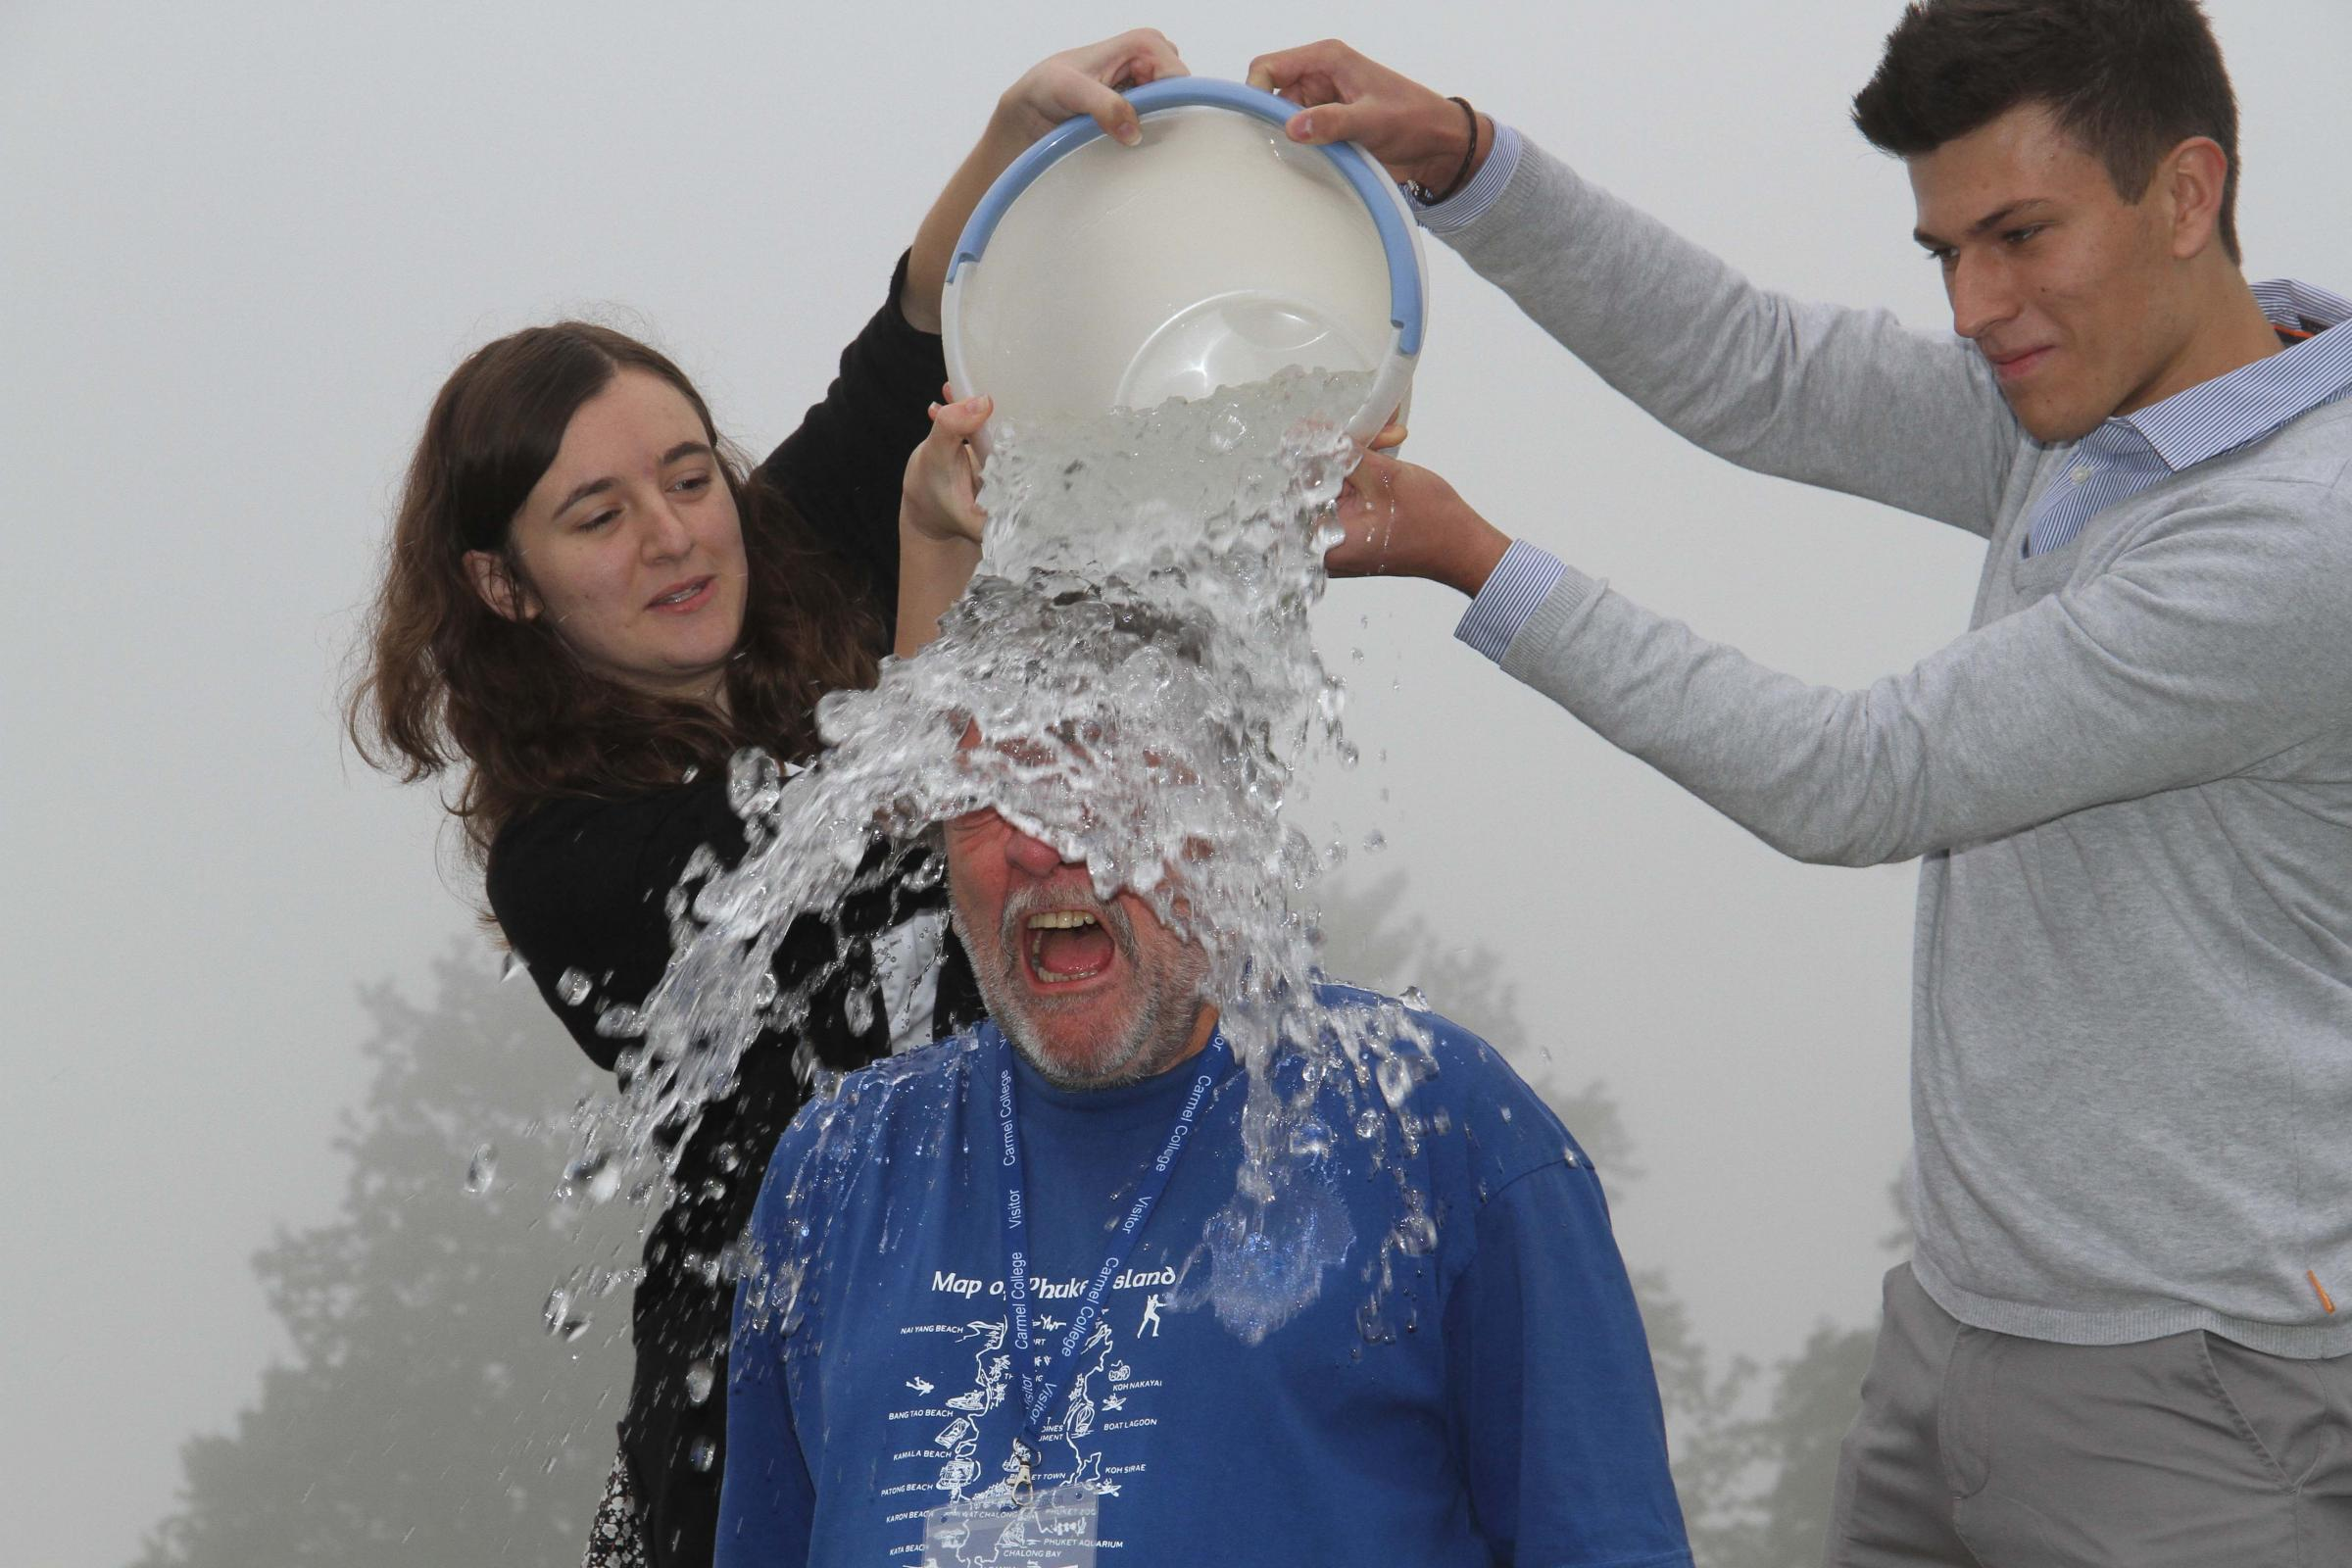 Darlington council leader Bill Dixon takes on the ice bucket challenge with Carmel College principal